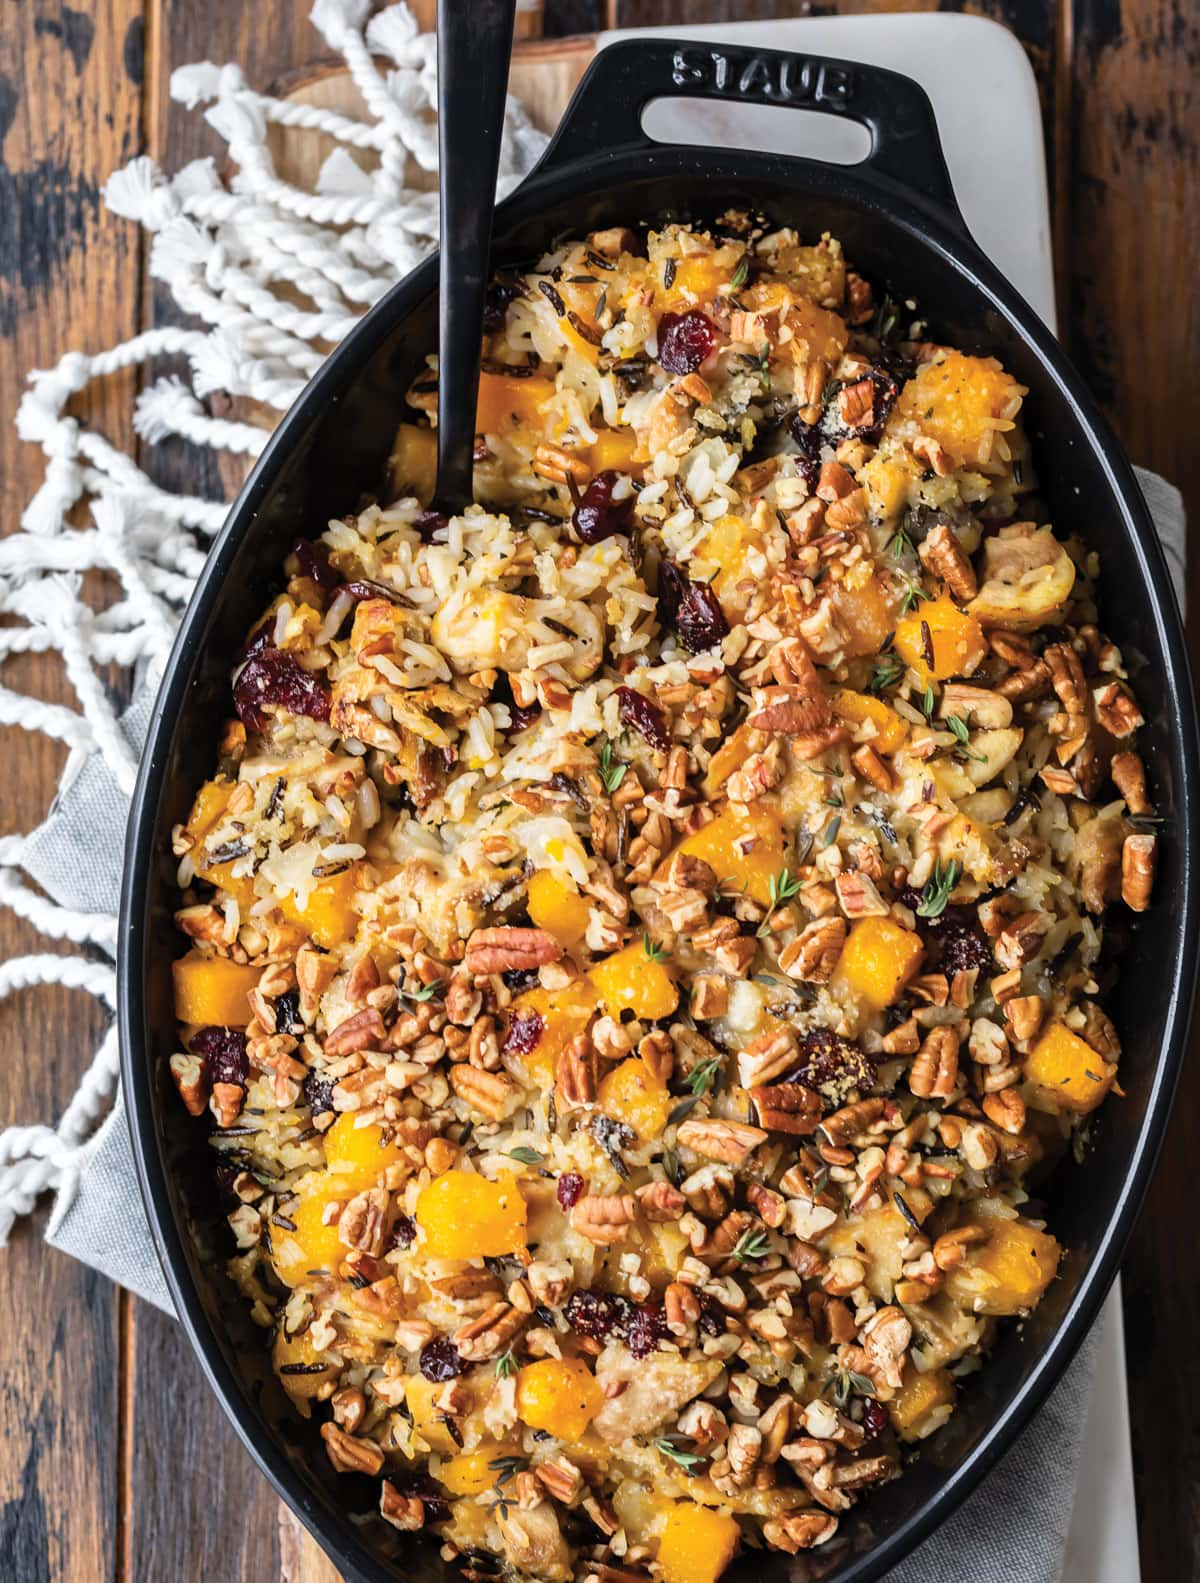 Butternut Squash Wild Rice Casserole from the Well Plated Cookbook